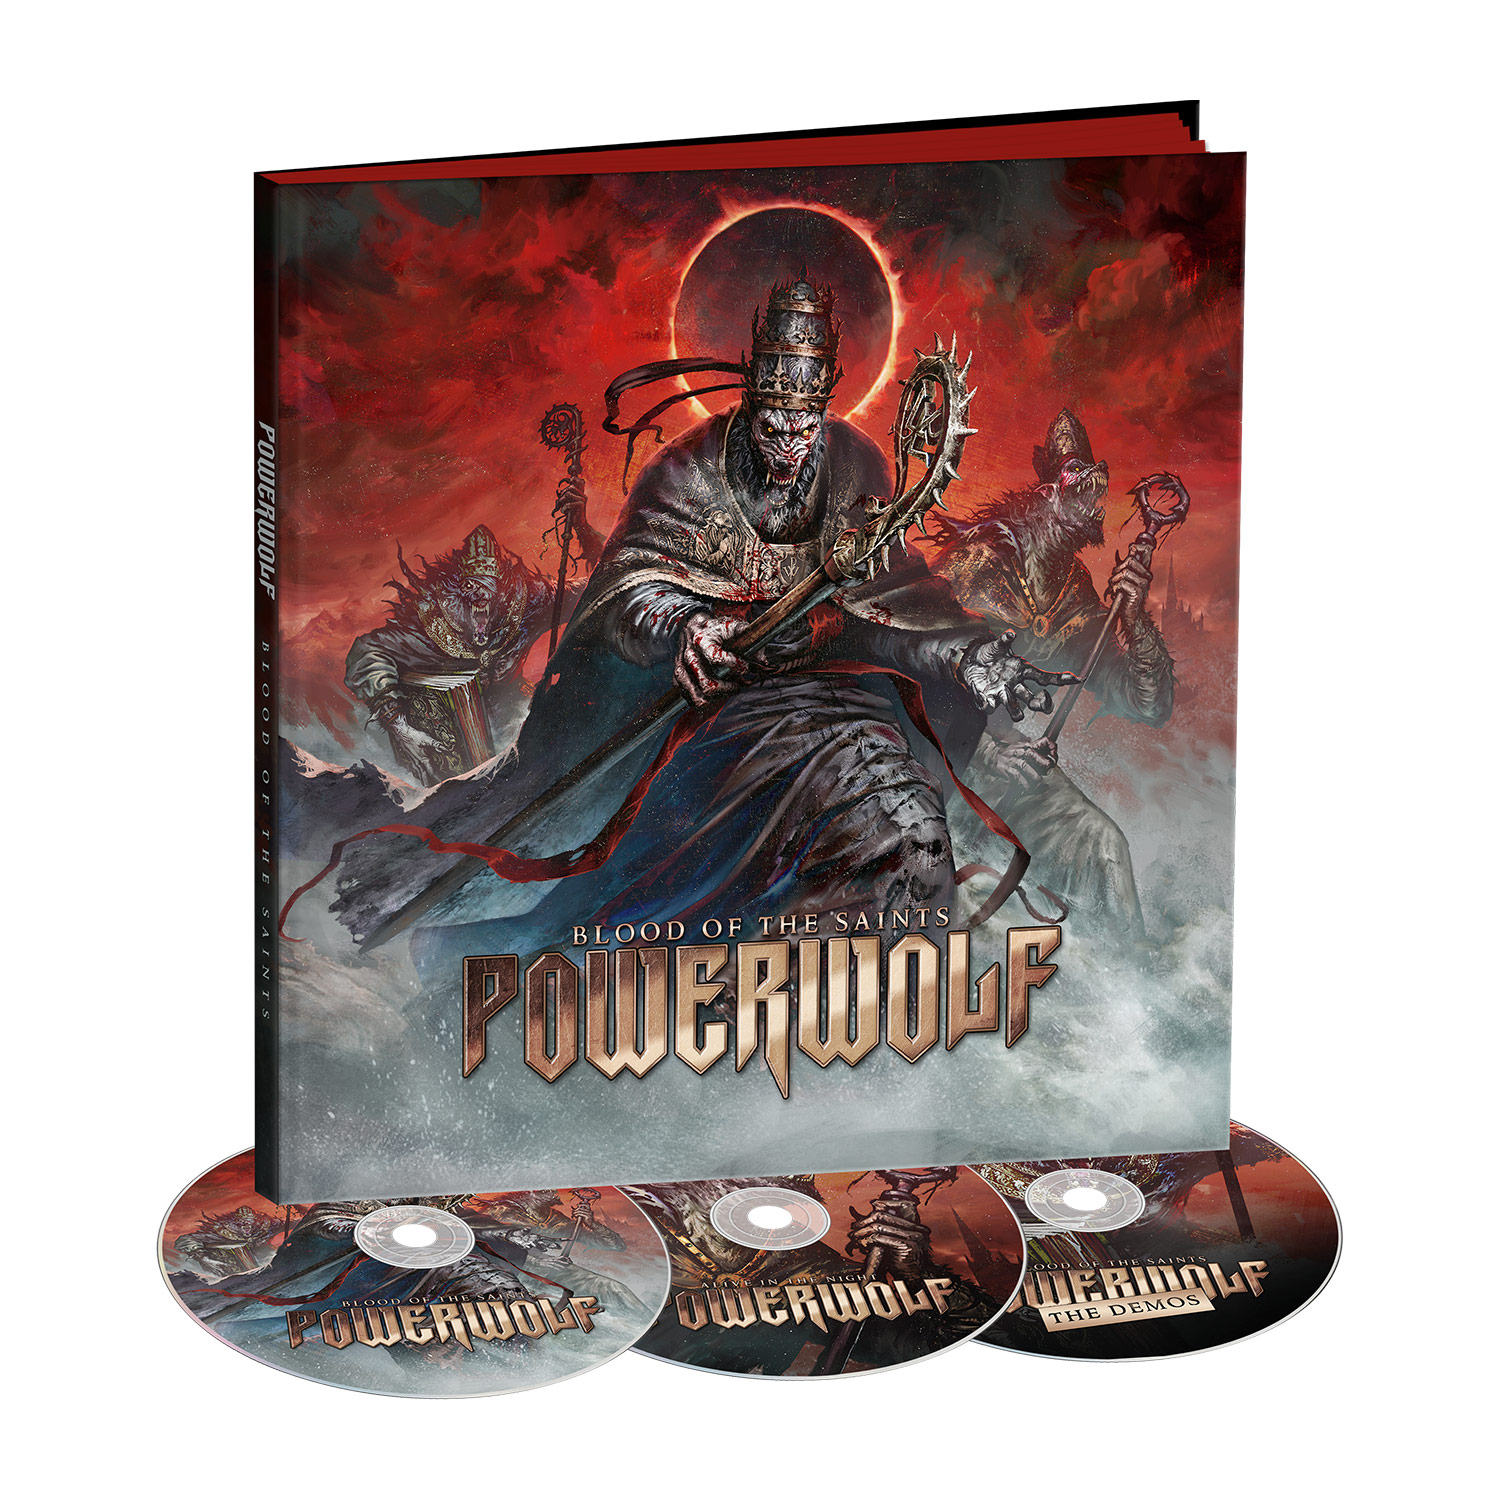 Blood of the Saints (10th Anniversary Edition - 3CD Earbook)